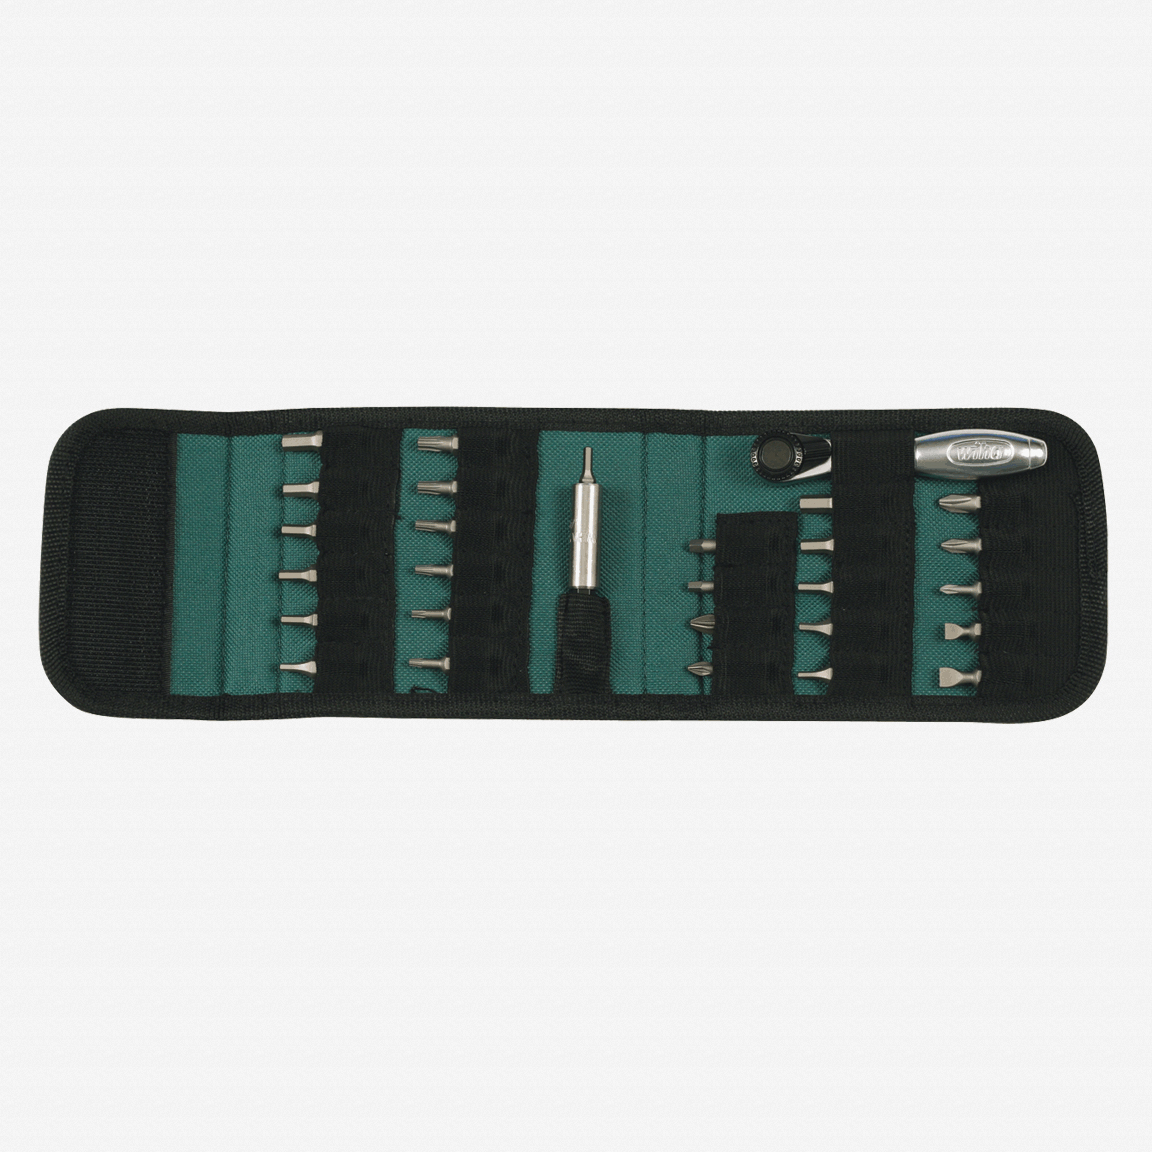 Wiha 74992 28 Piece Bit Ratchet Compact Pouch Set - KC Tool